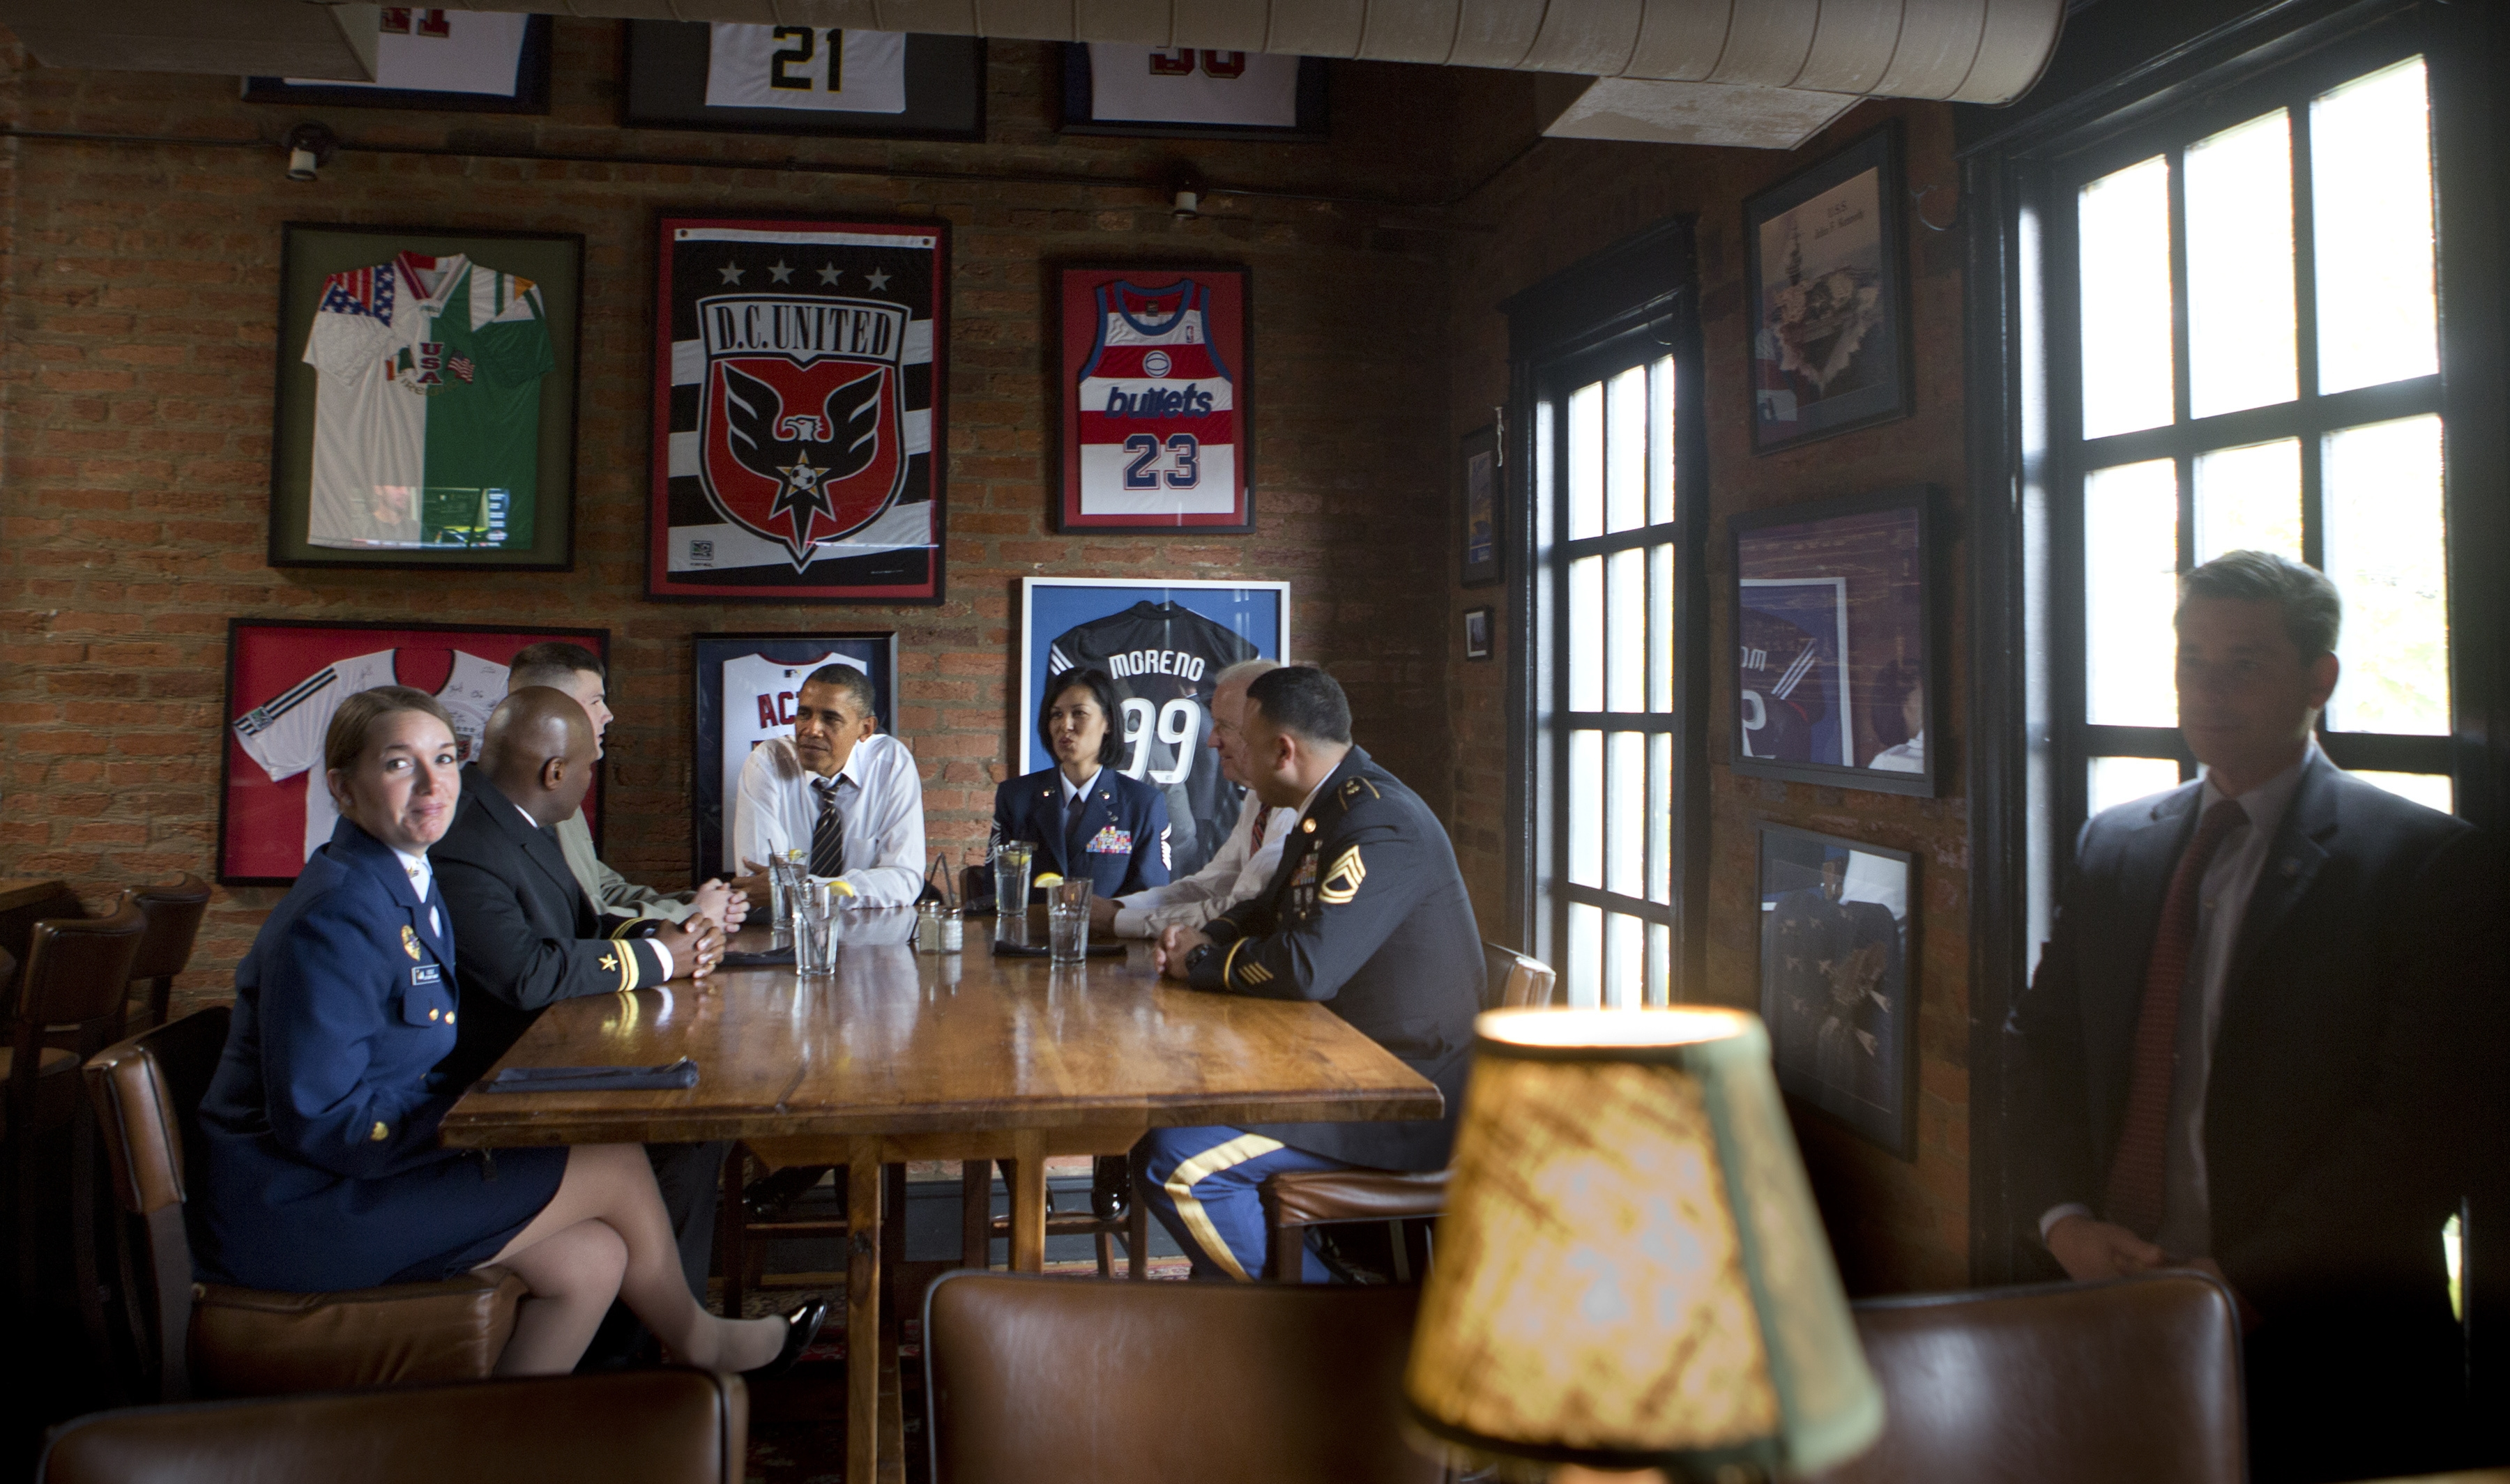 """Coast Guard Petty Officer Katie Cole, 26, far left, a native of Springville, and four other members of the military were invited Monday to dine with President Obama and Vice President Biden at an Irish pub on Capitol Hill on Tuesday. """"Today was just the coolest day of my life,"""" Cole said."""